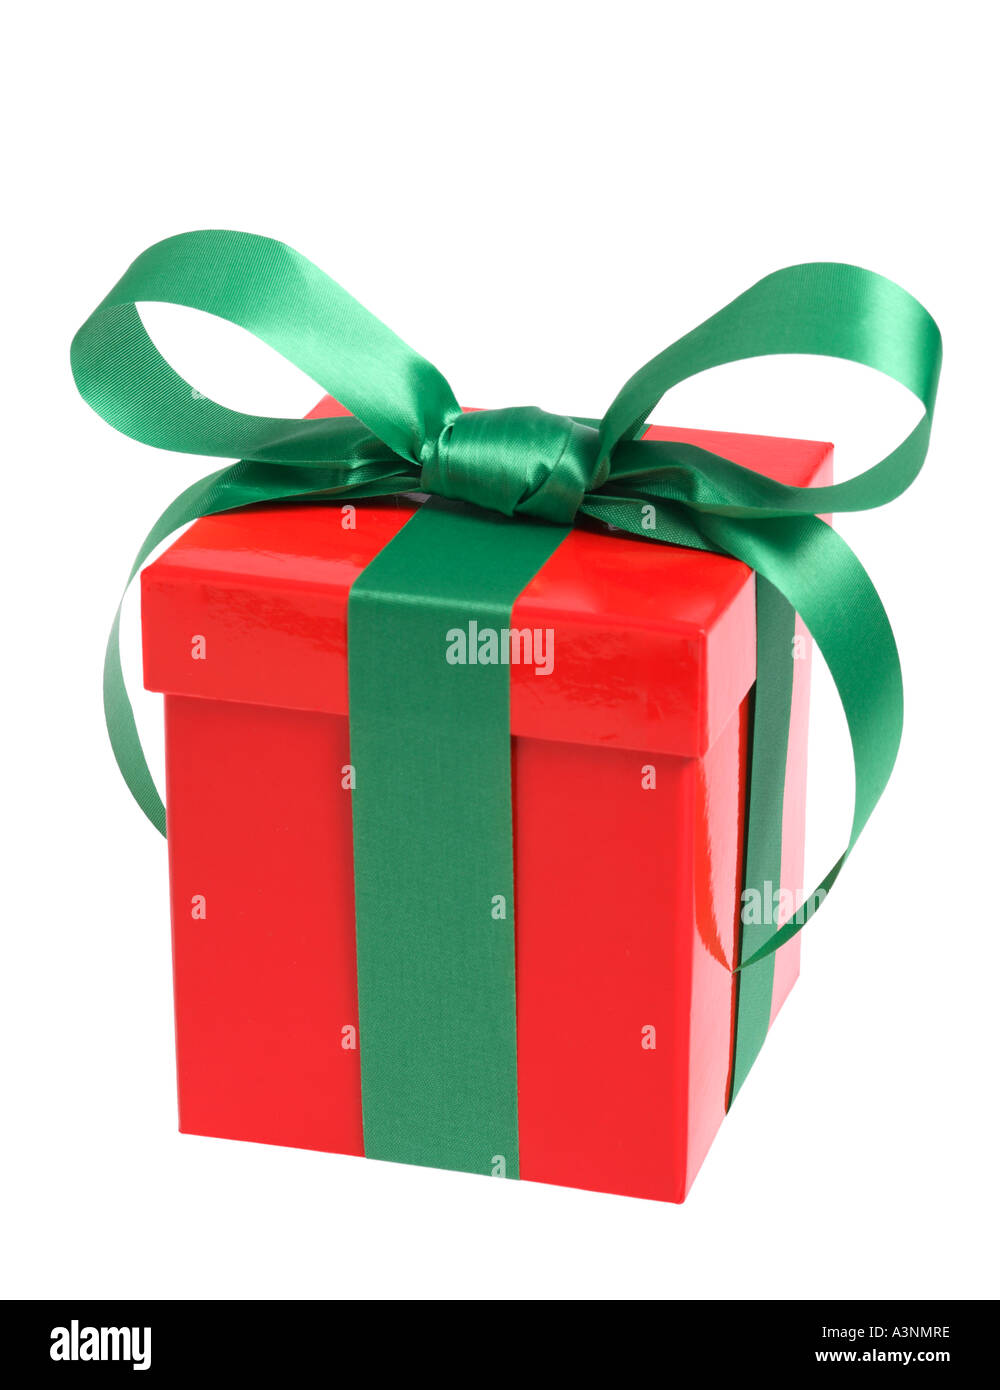 Single Red Christmas Present with Green Bow - Stock Image